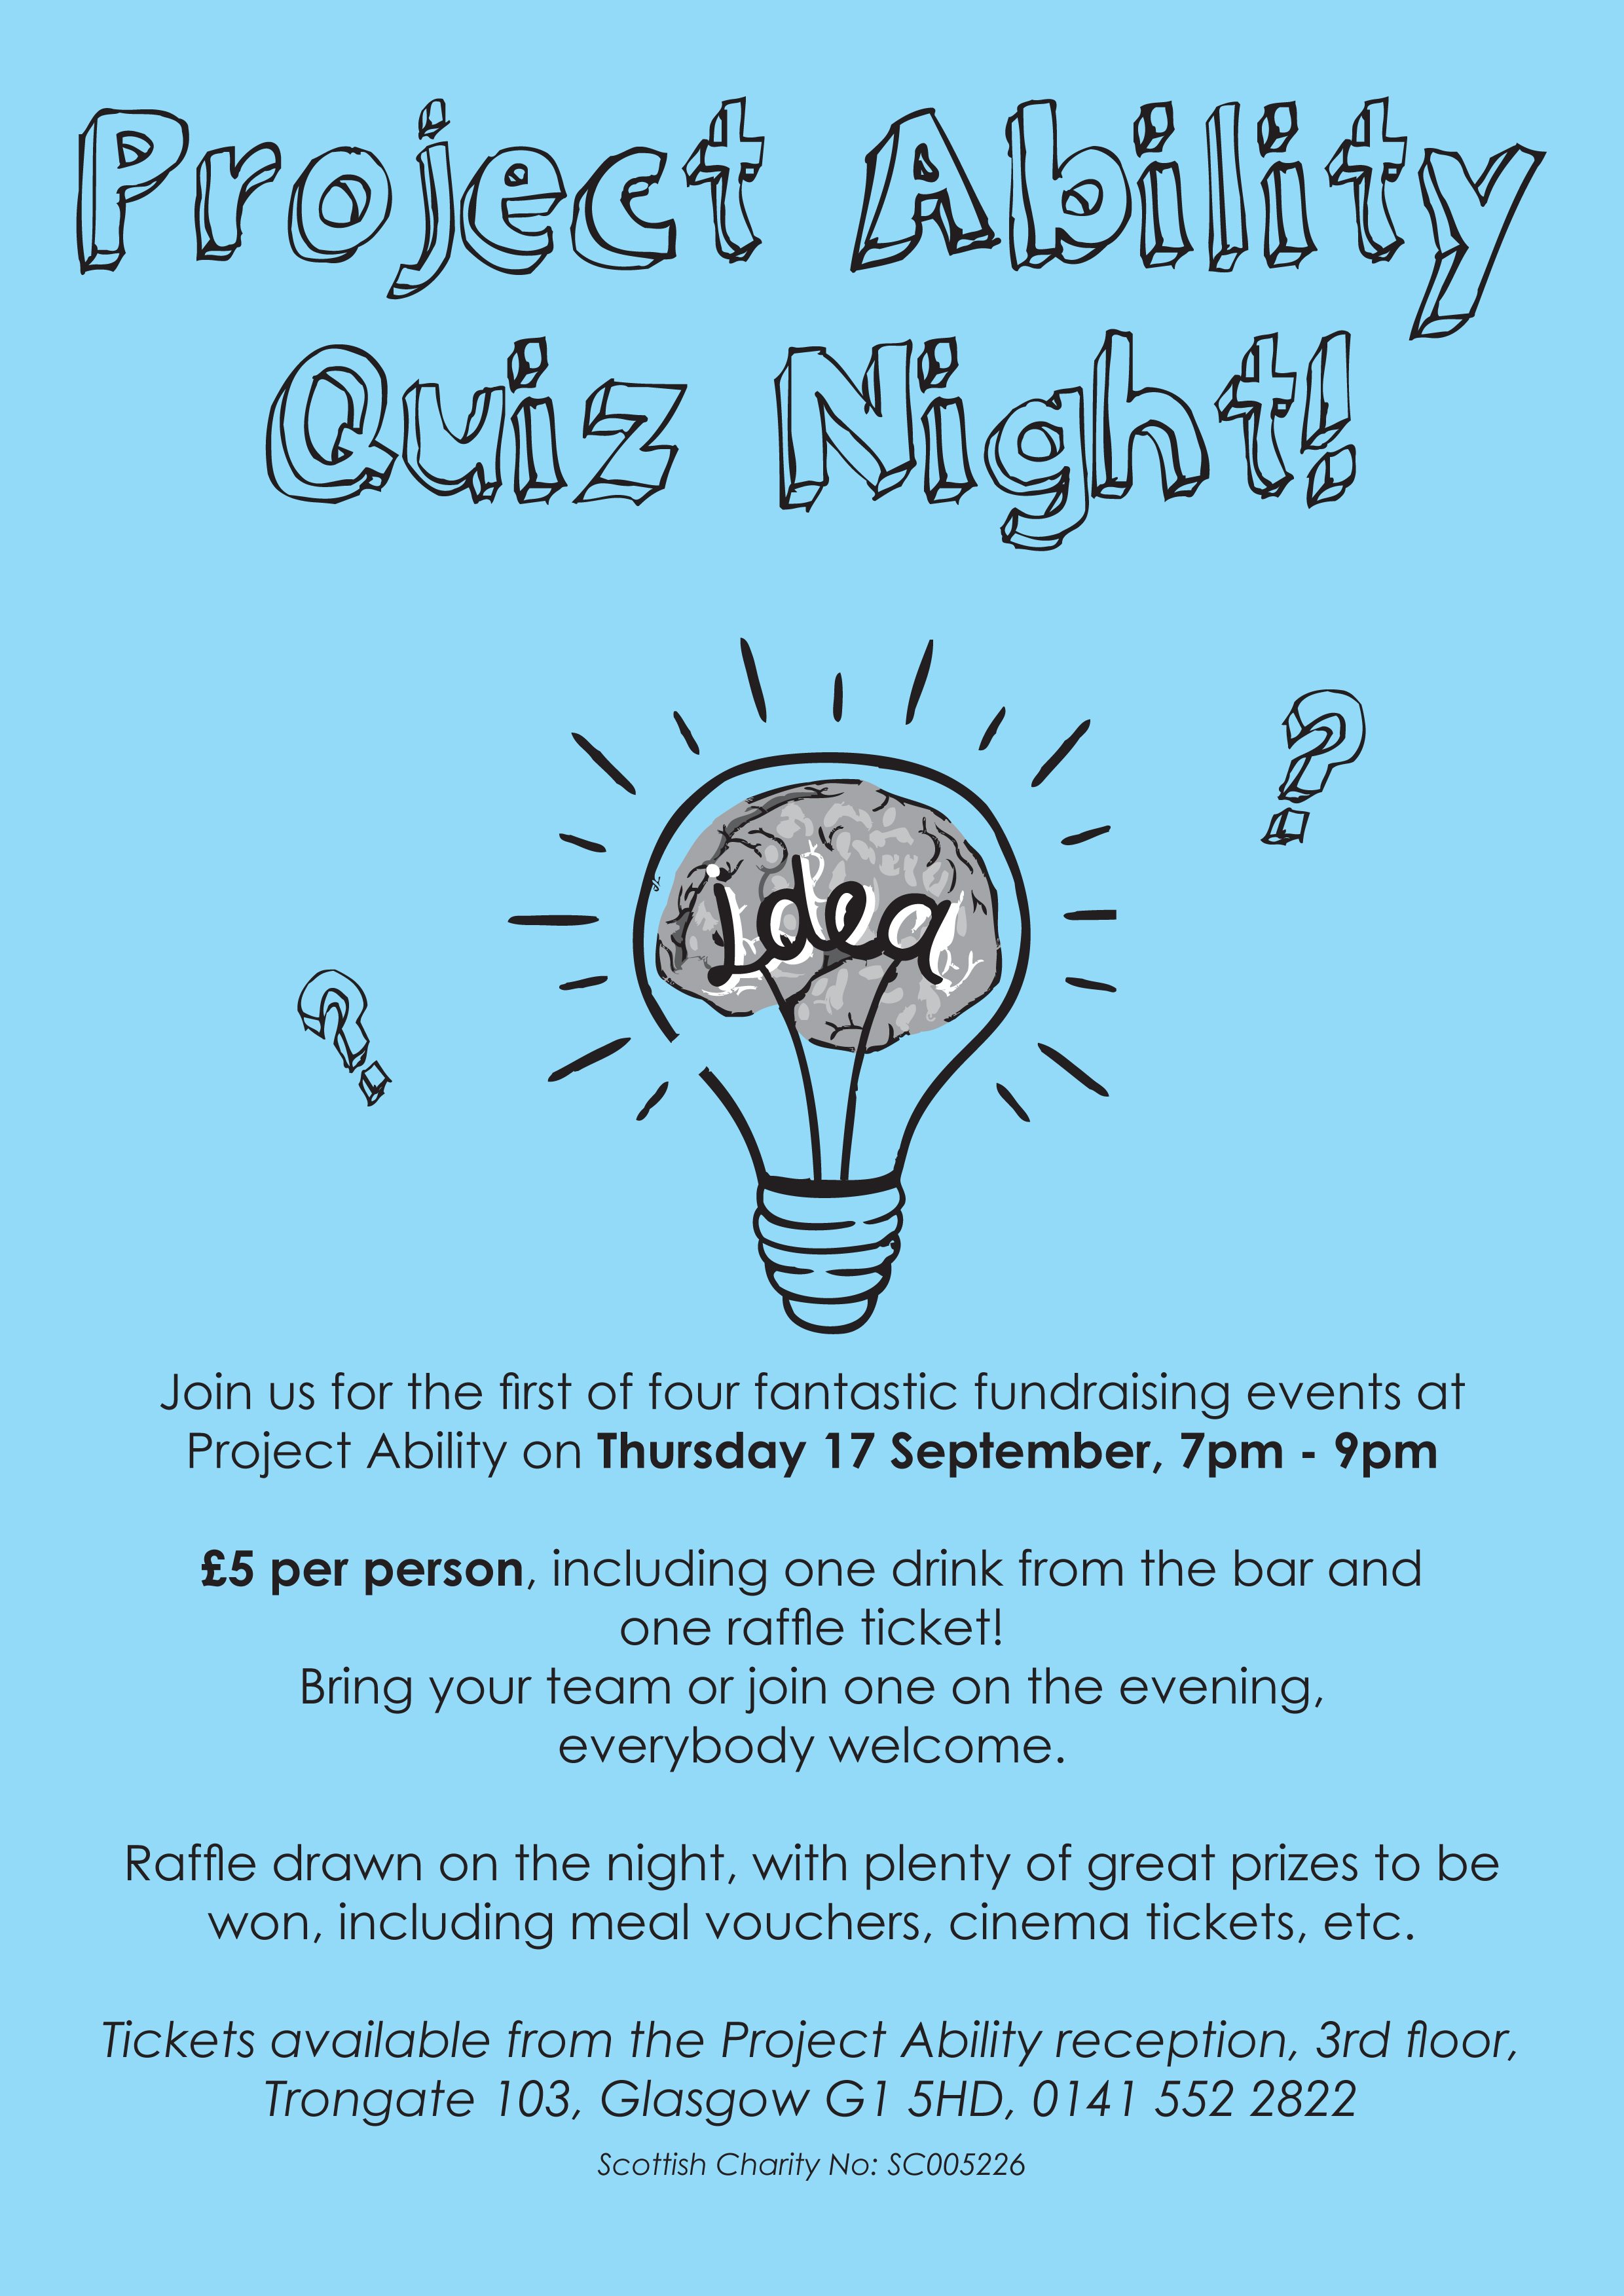 Project Ability Quiz Night